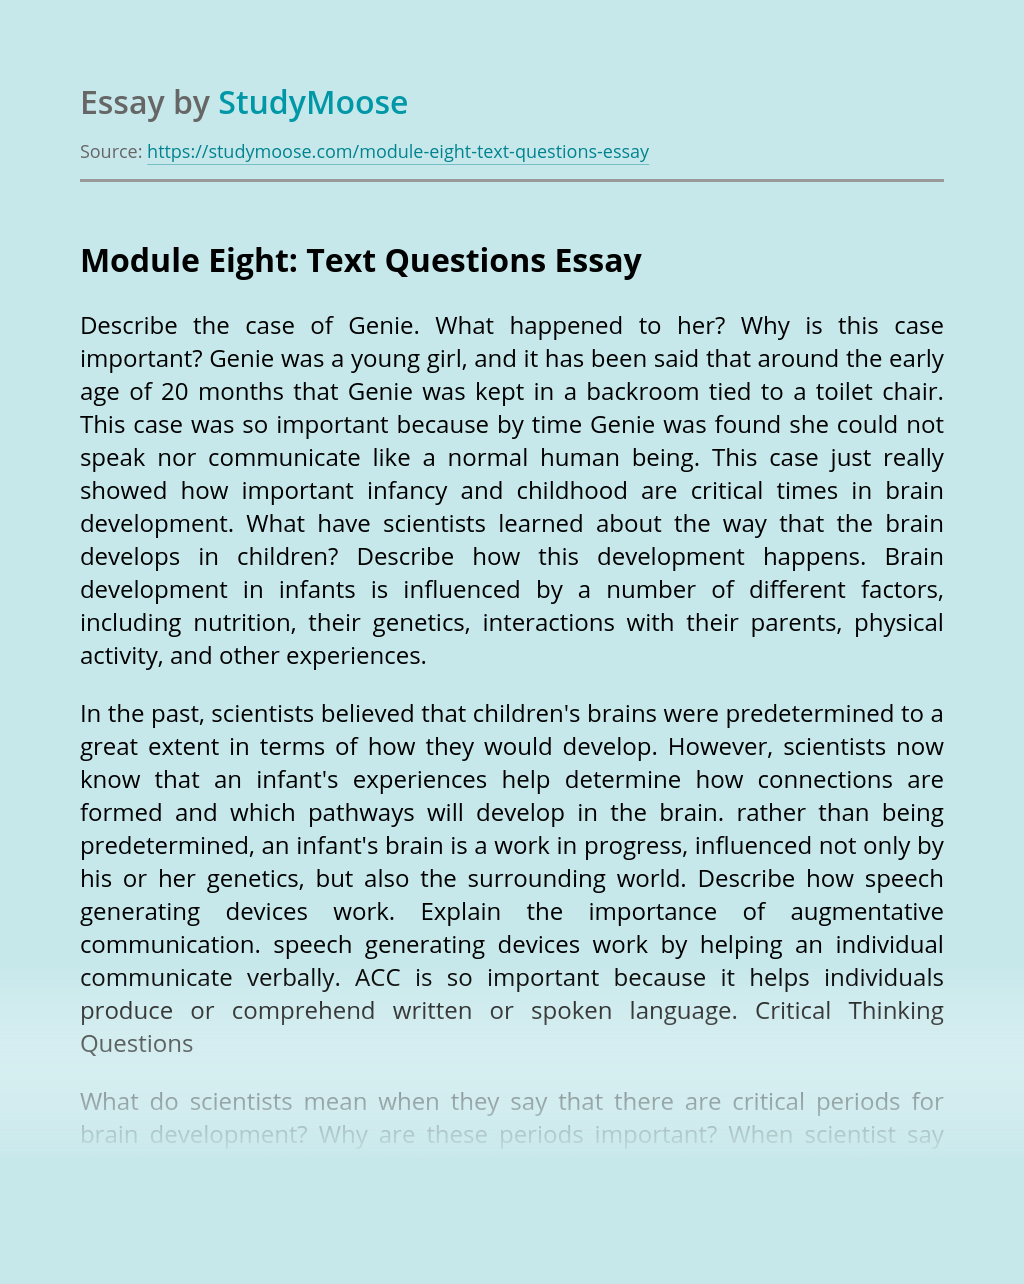 Module Eight: Text Questions